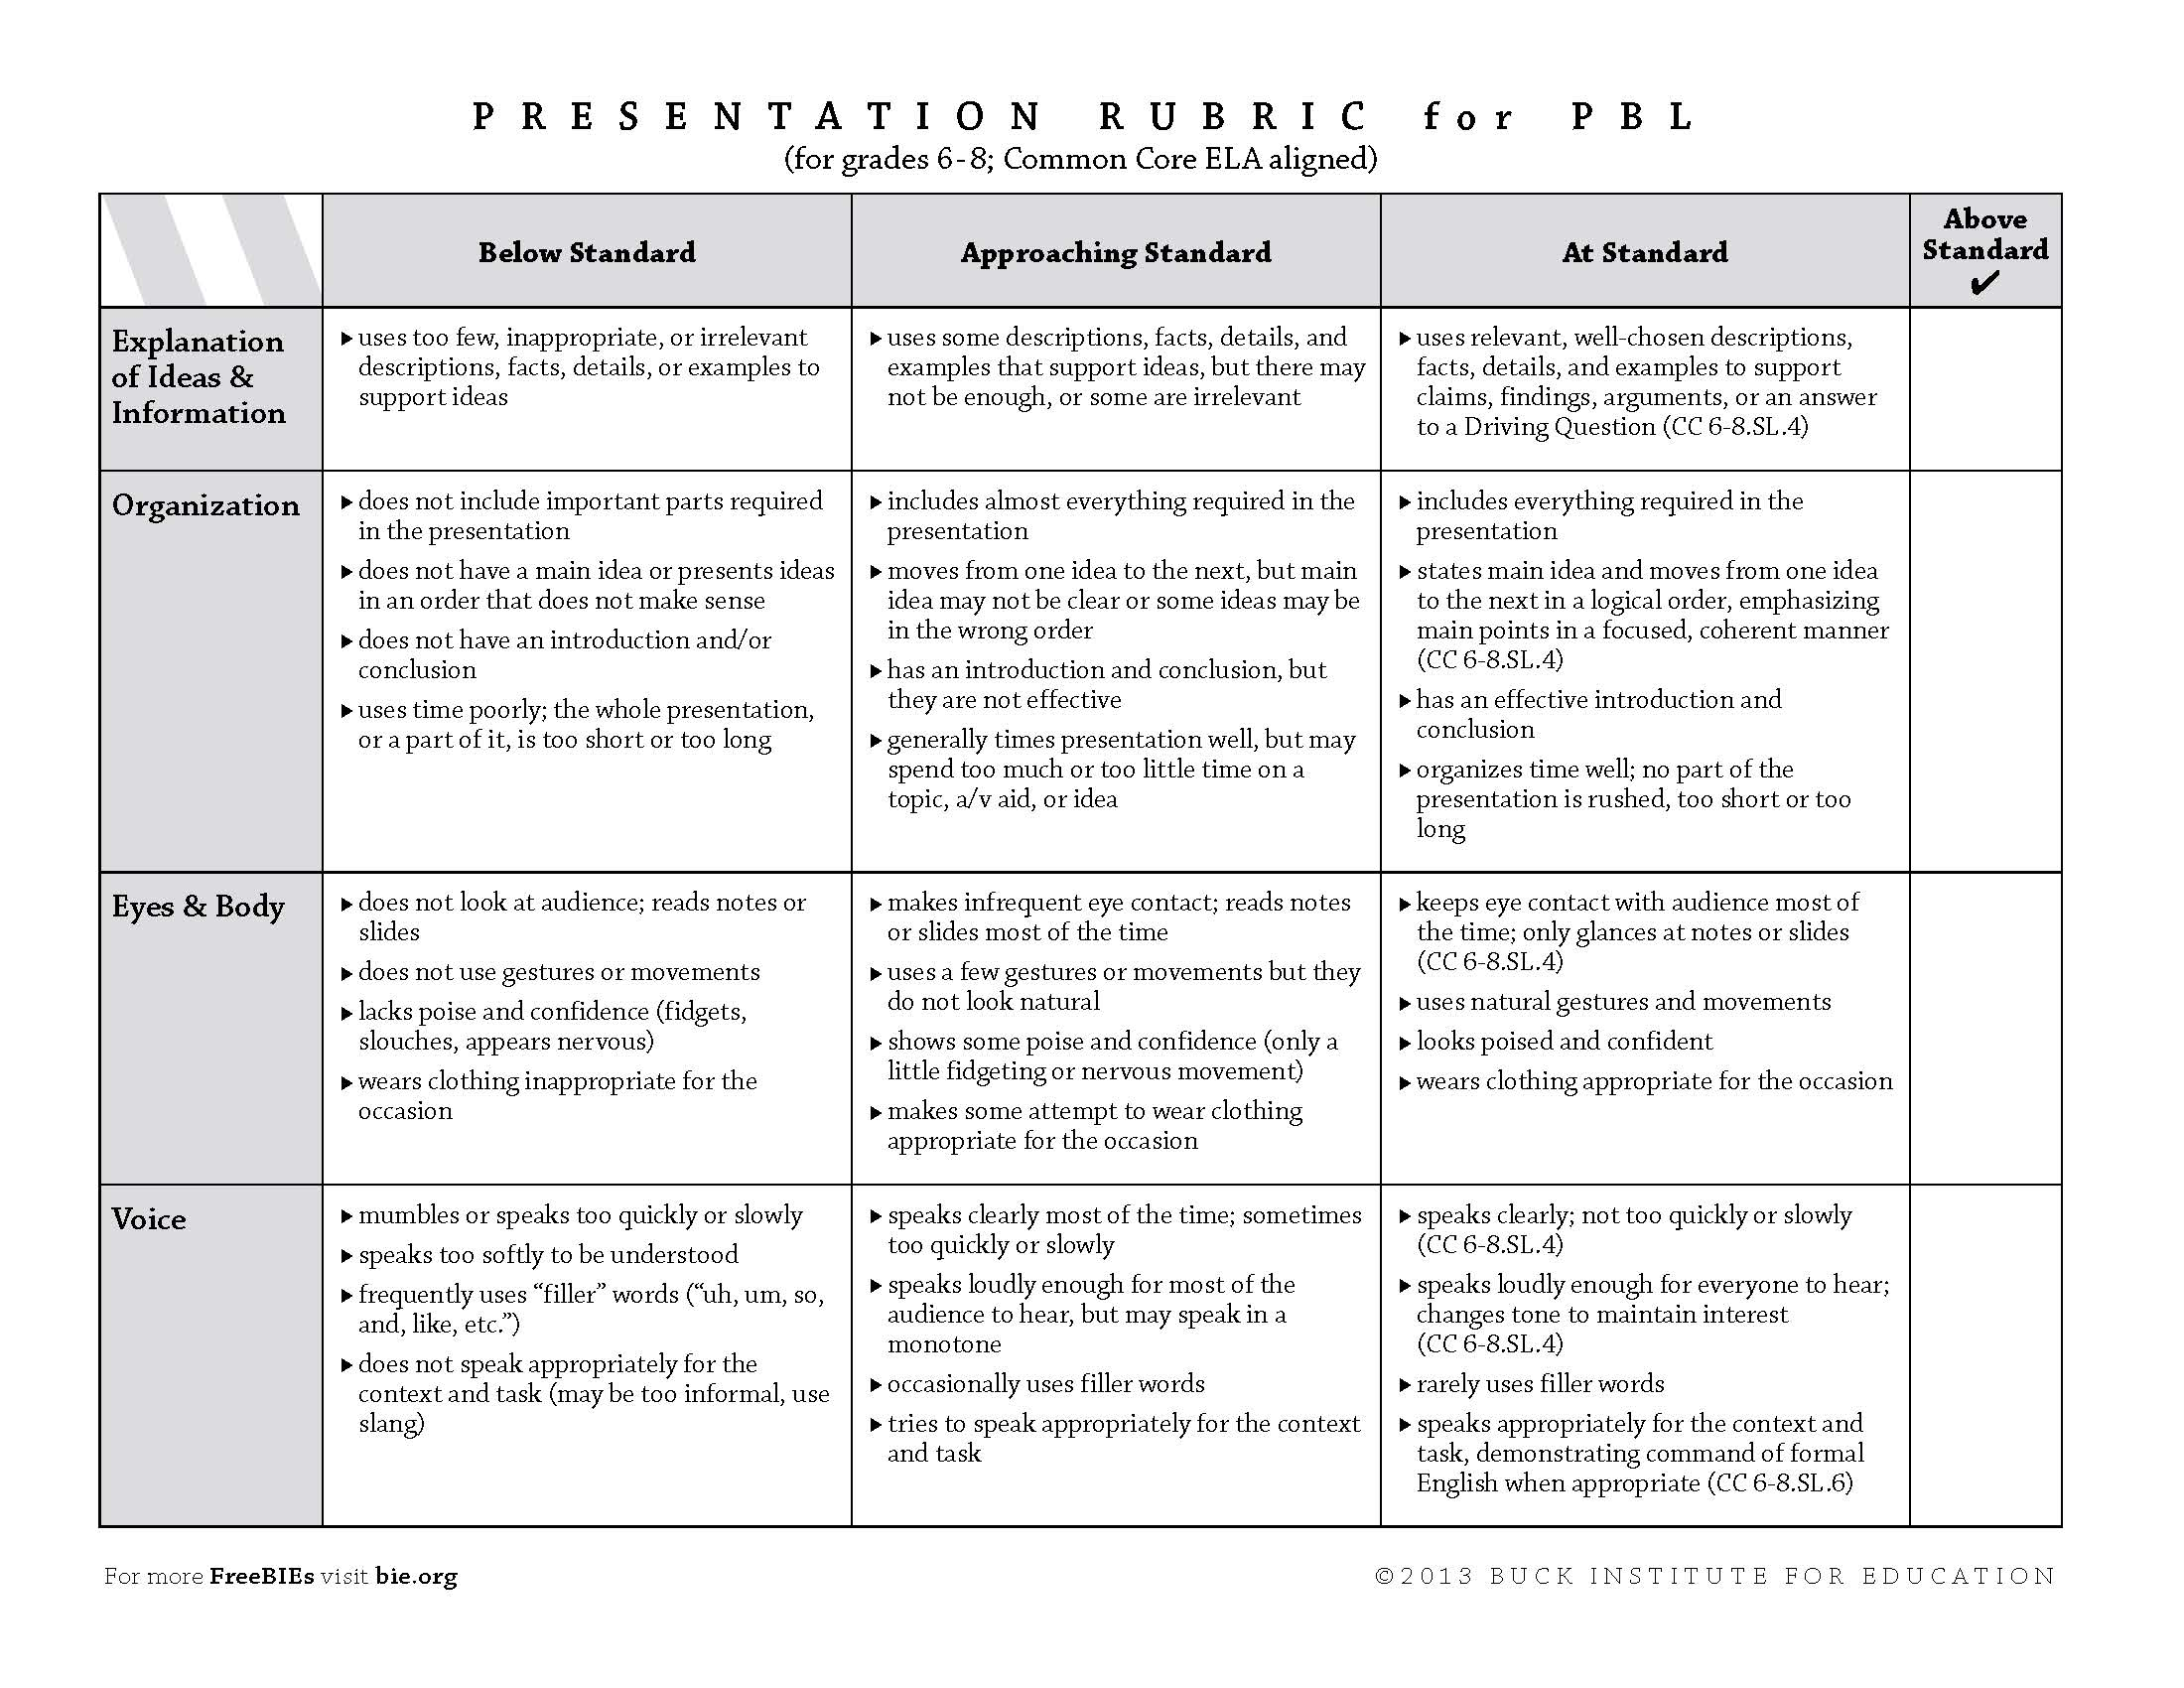 Assessment And Rubrics Kathy Schrock's Guide To Everything